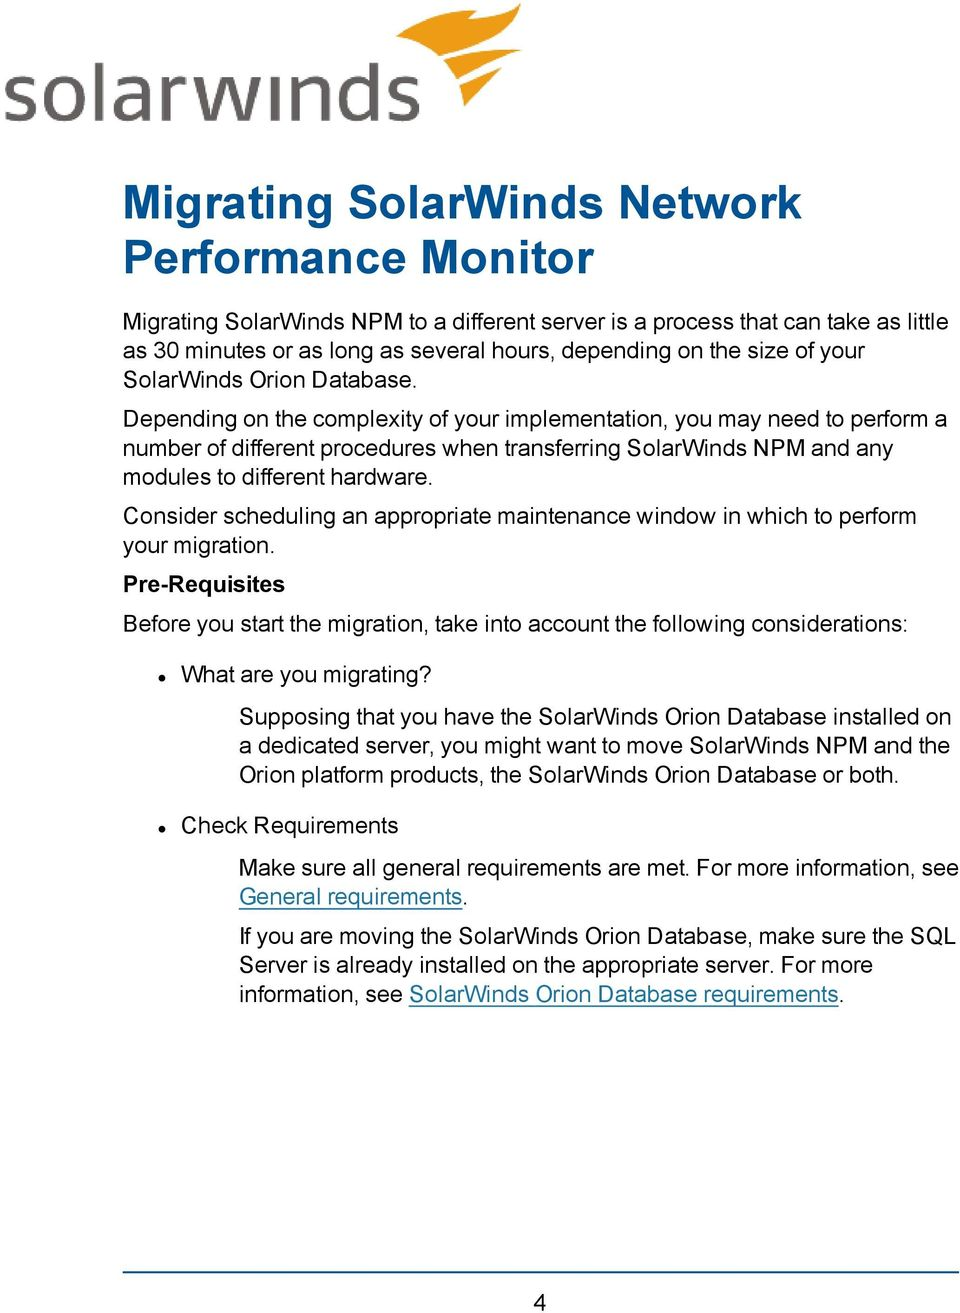 Depending on the complexity of your implementation, you may need to perform a number of different procedures when transferring SolarWinds NPM and any modules to different hardware.